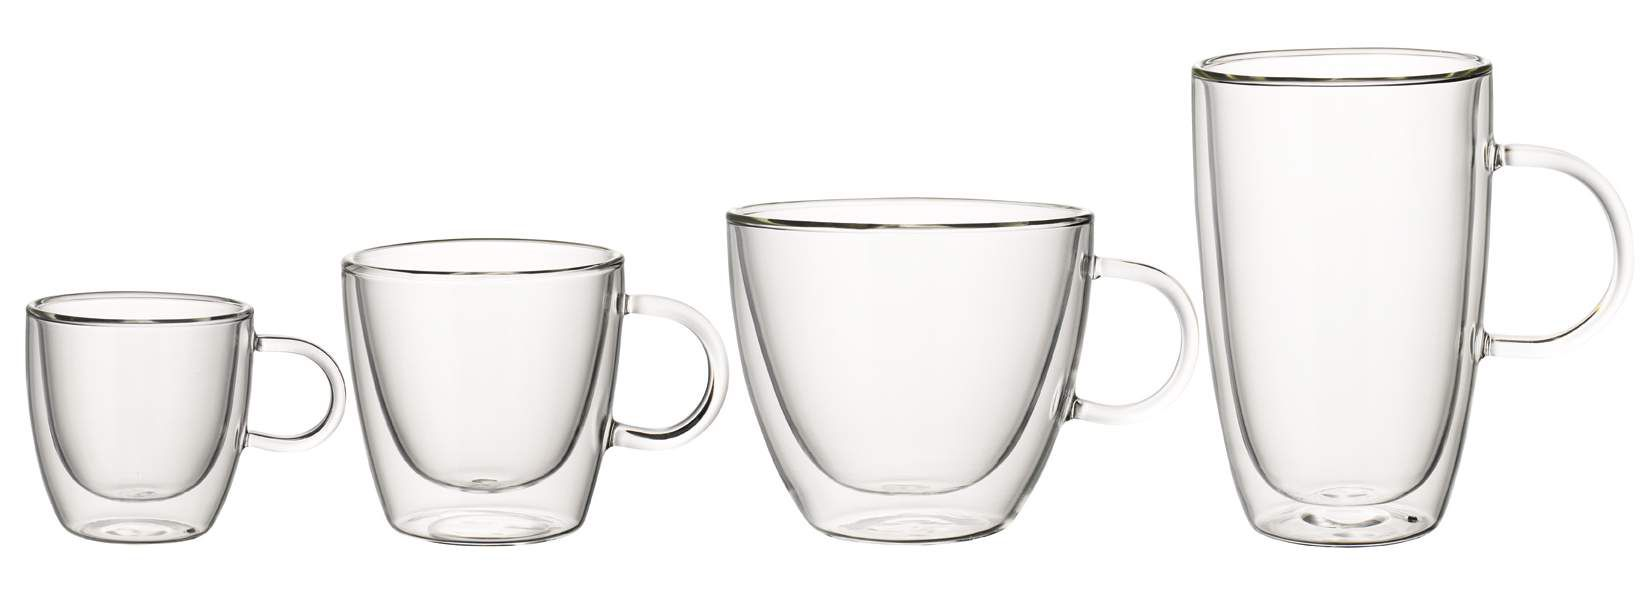 Artesano hot beverage cups and teapot